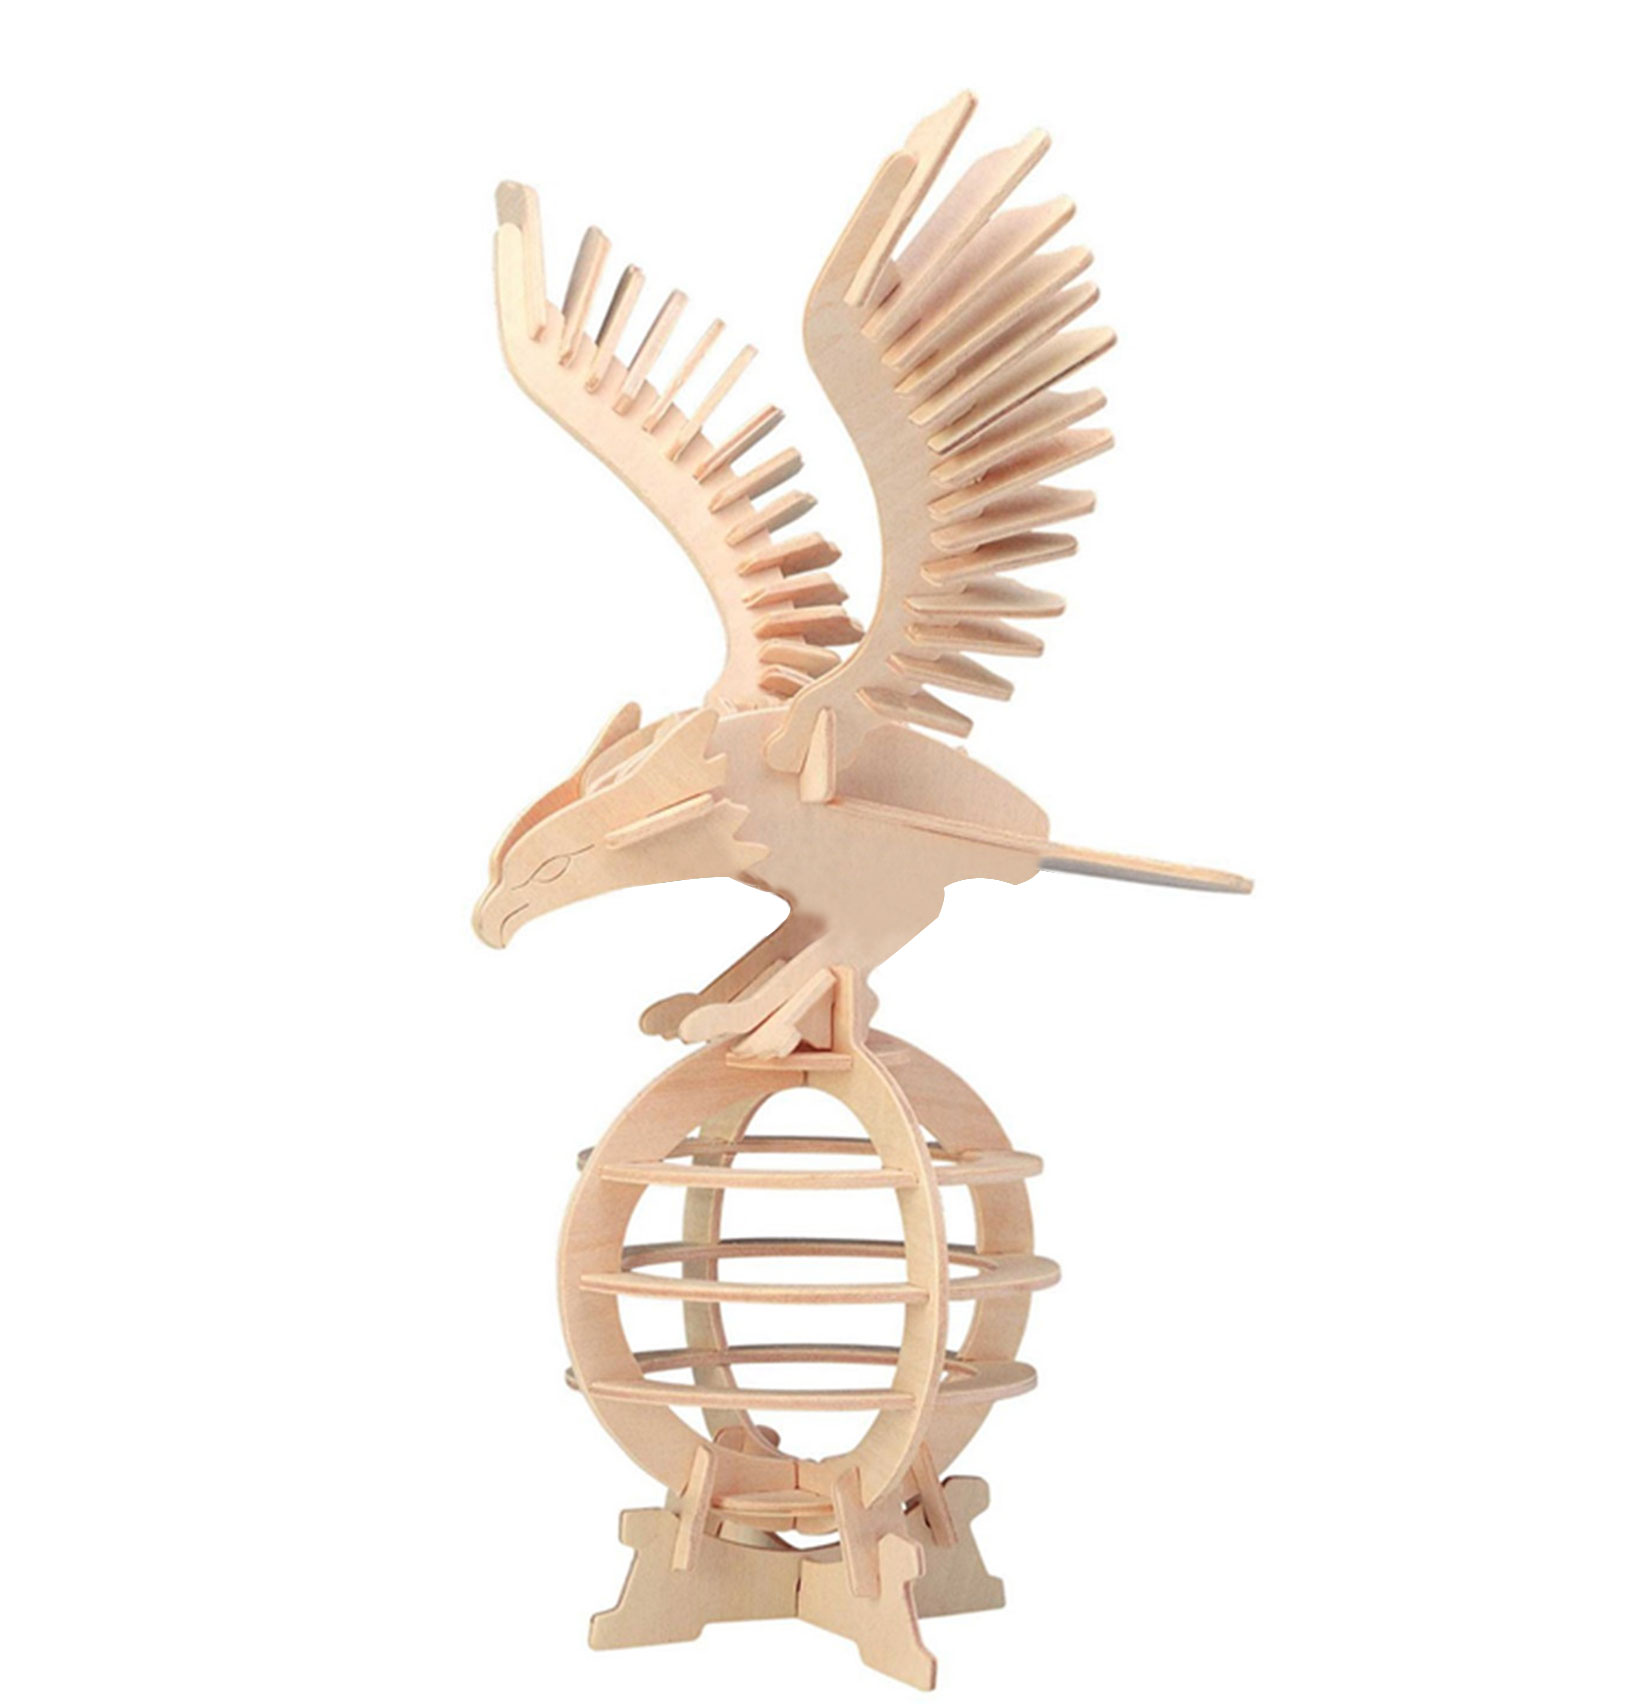 Toy - Eagle Woodcraft Construction Kit Puzzle Model for DIY Lover